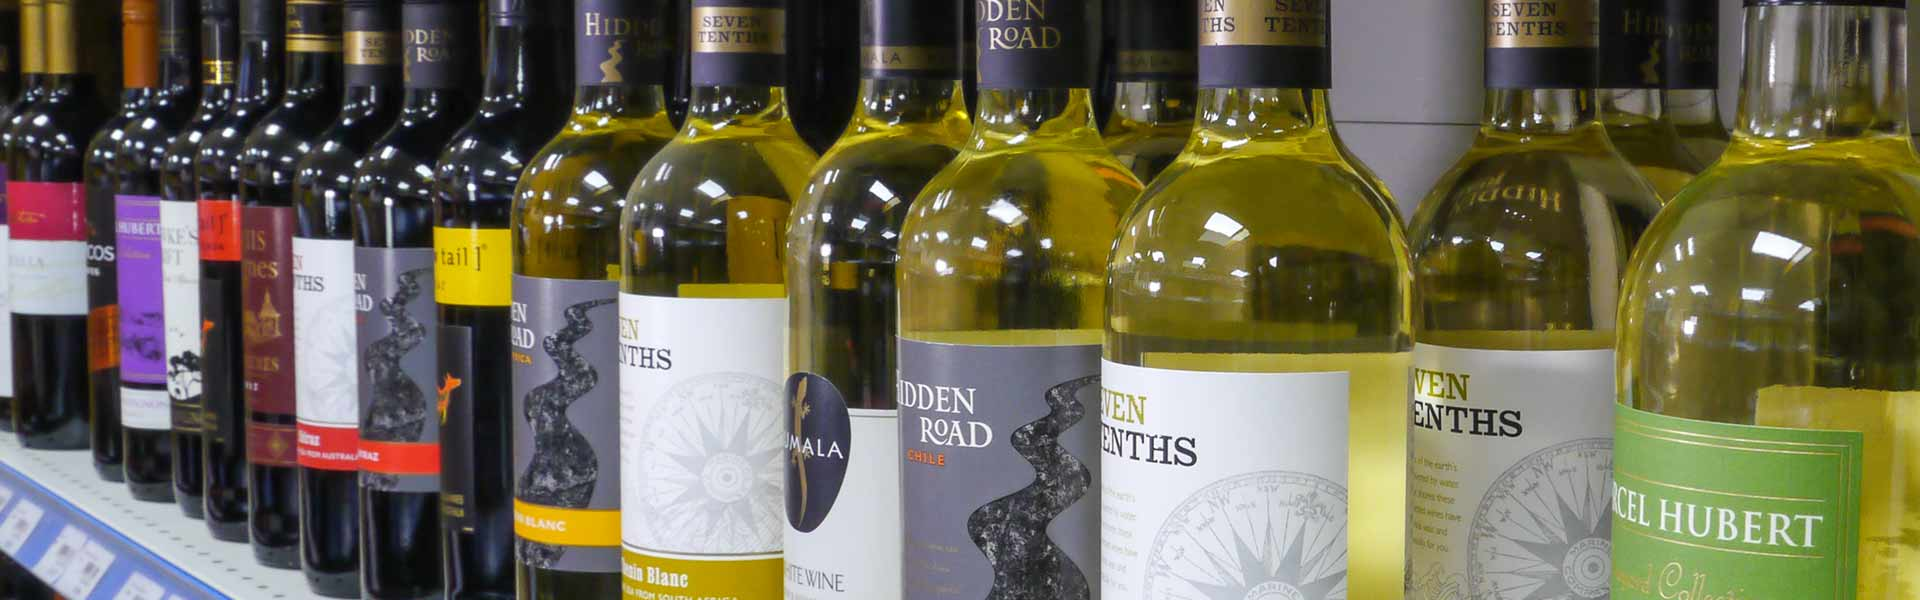 Port Appin Stores - off sales wines, beers & spirits